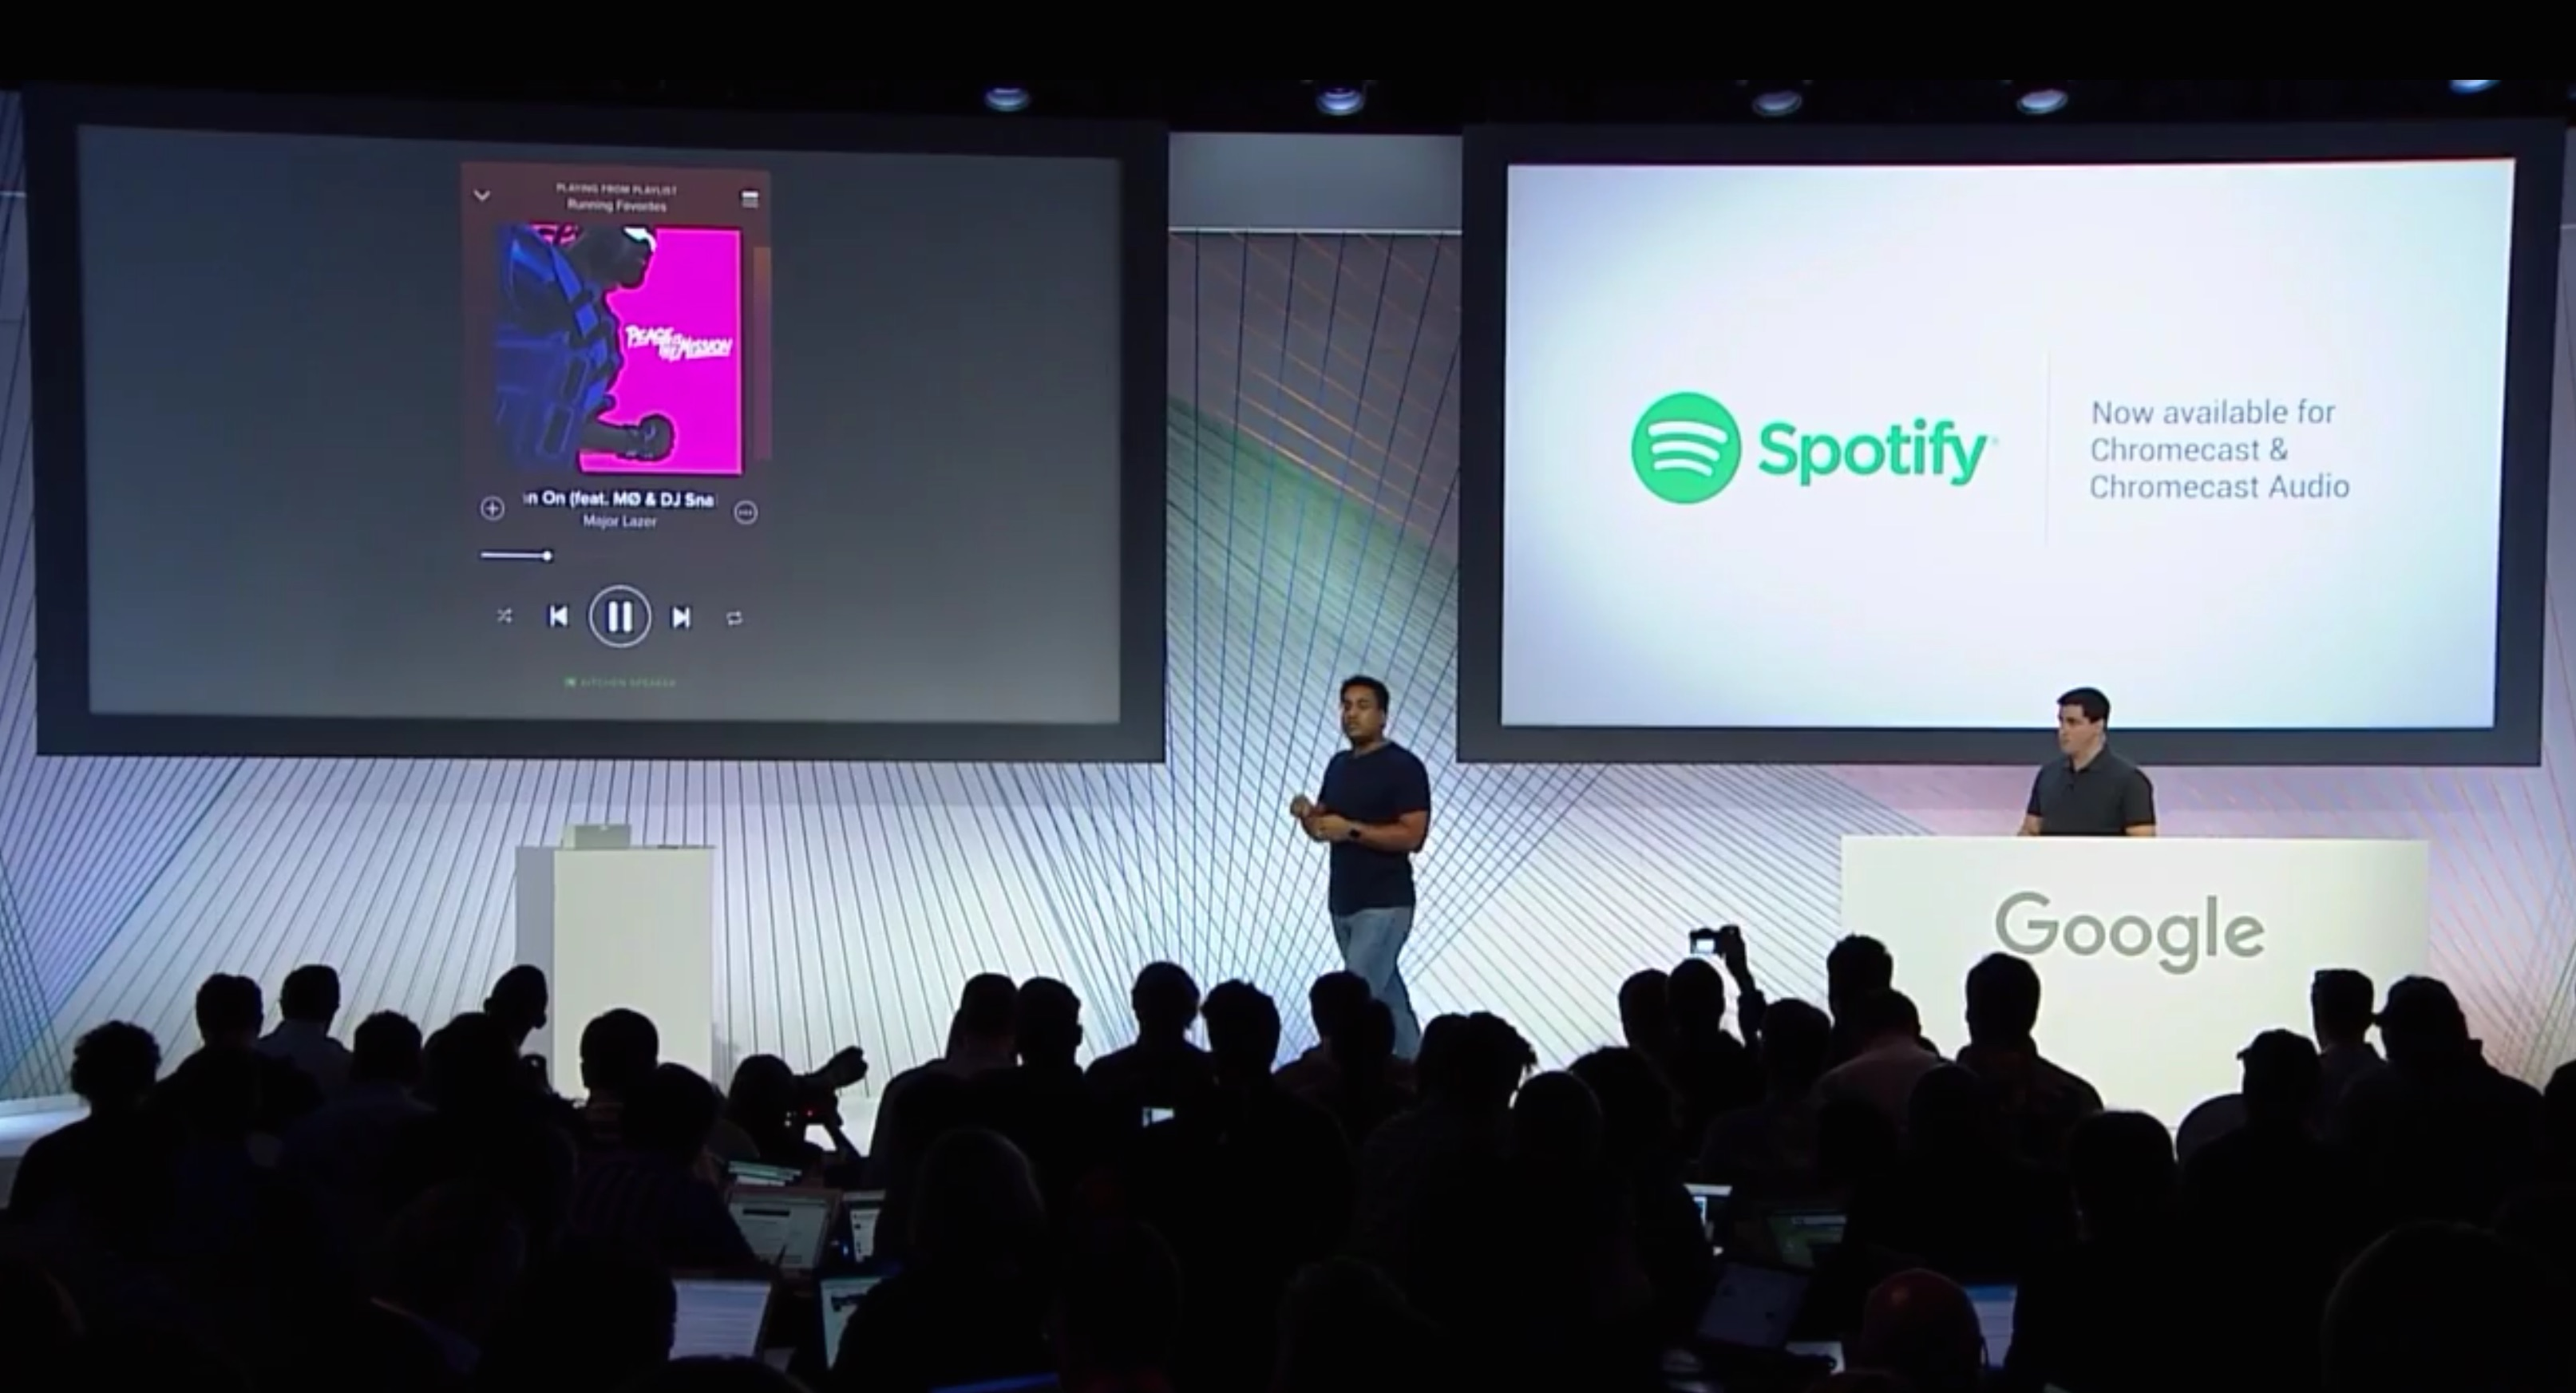 how to use chromecast with spotify